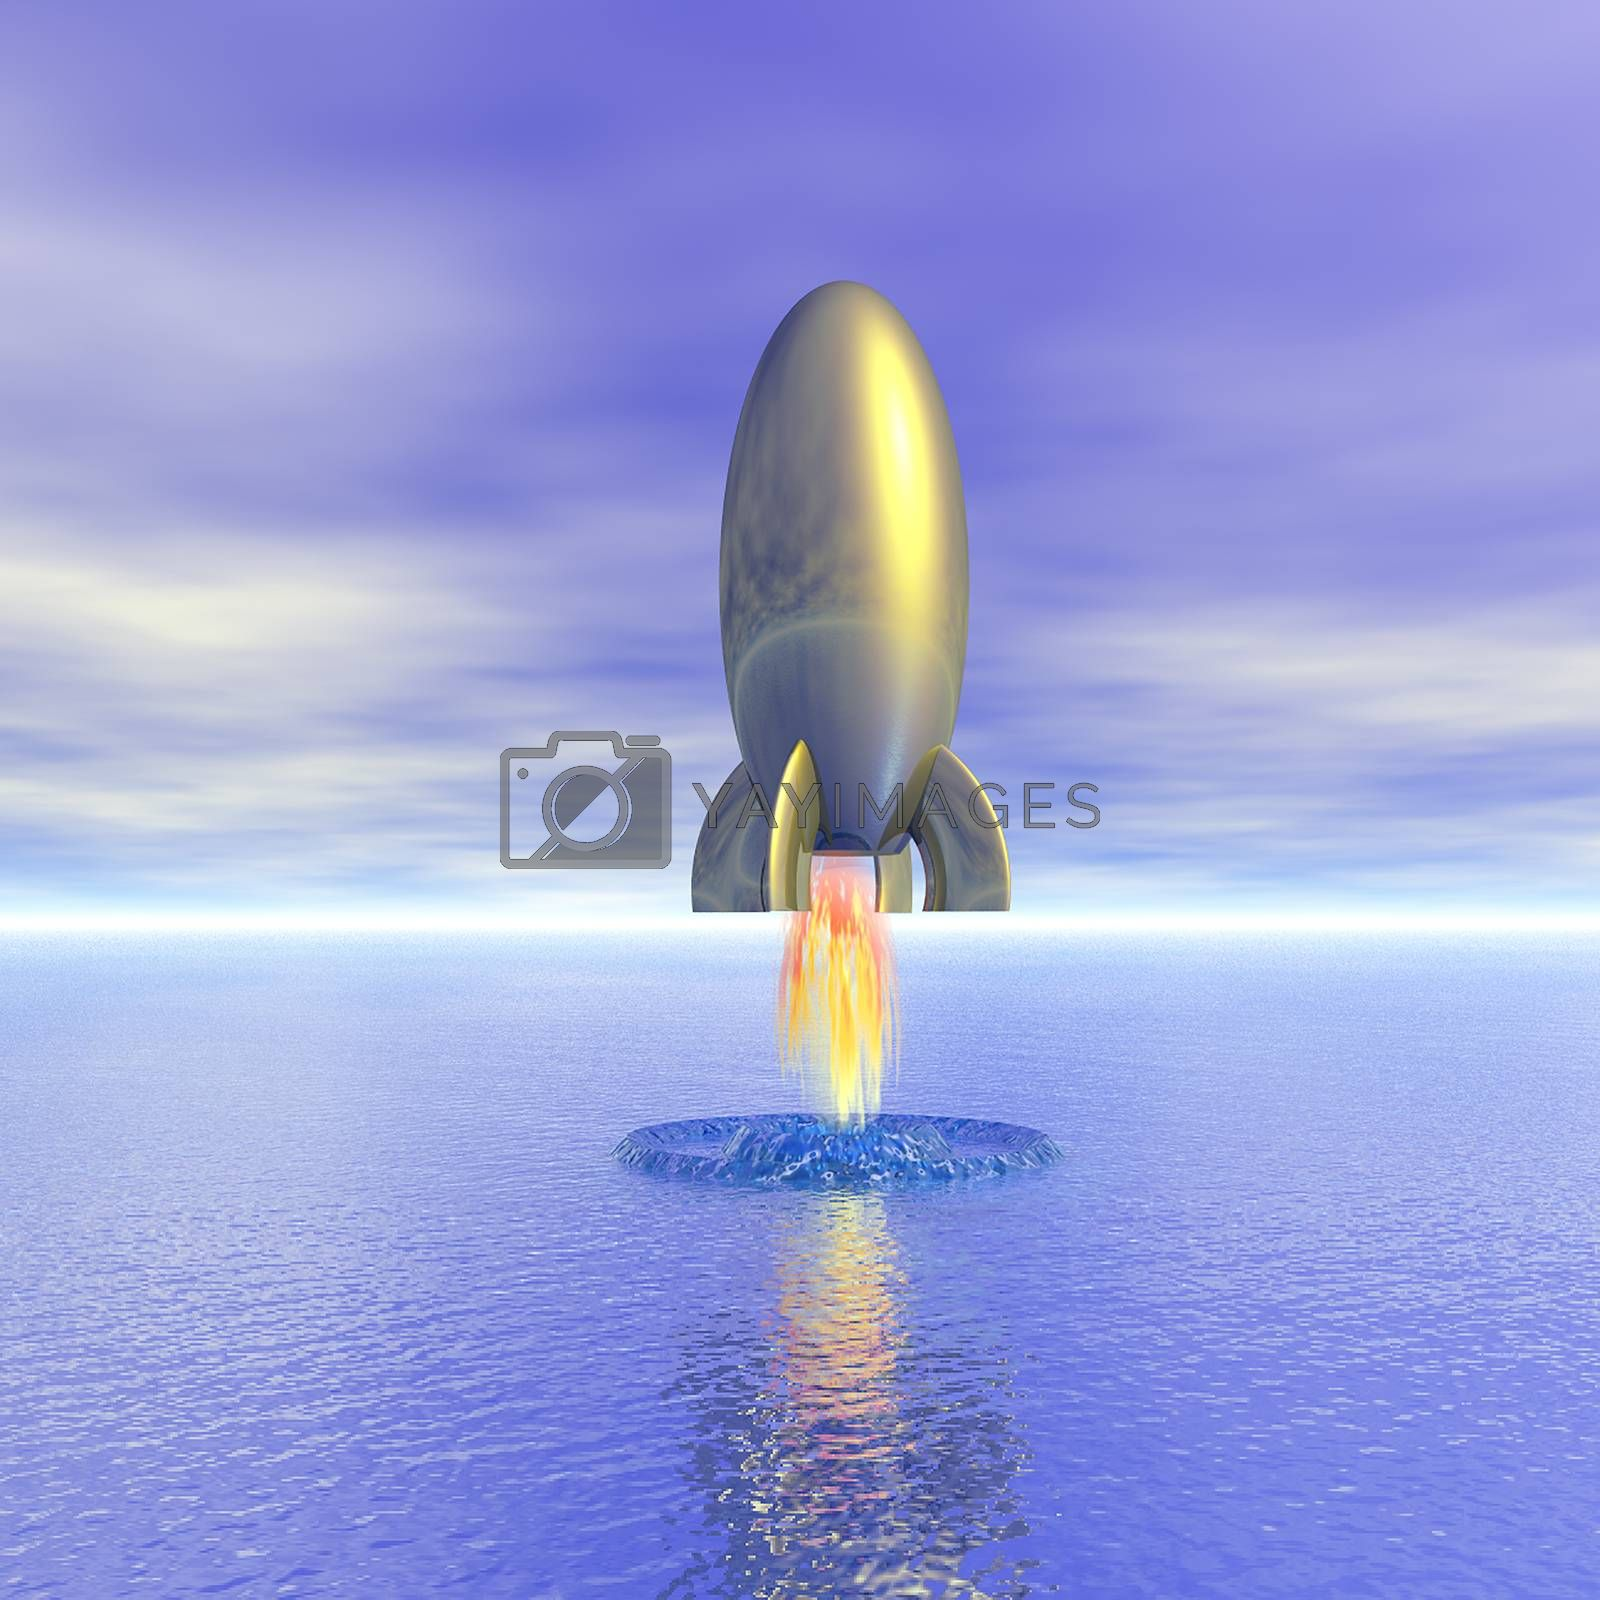 Retro rocket launch from water surface. 3D rendering